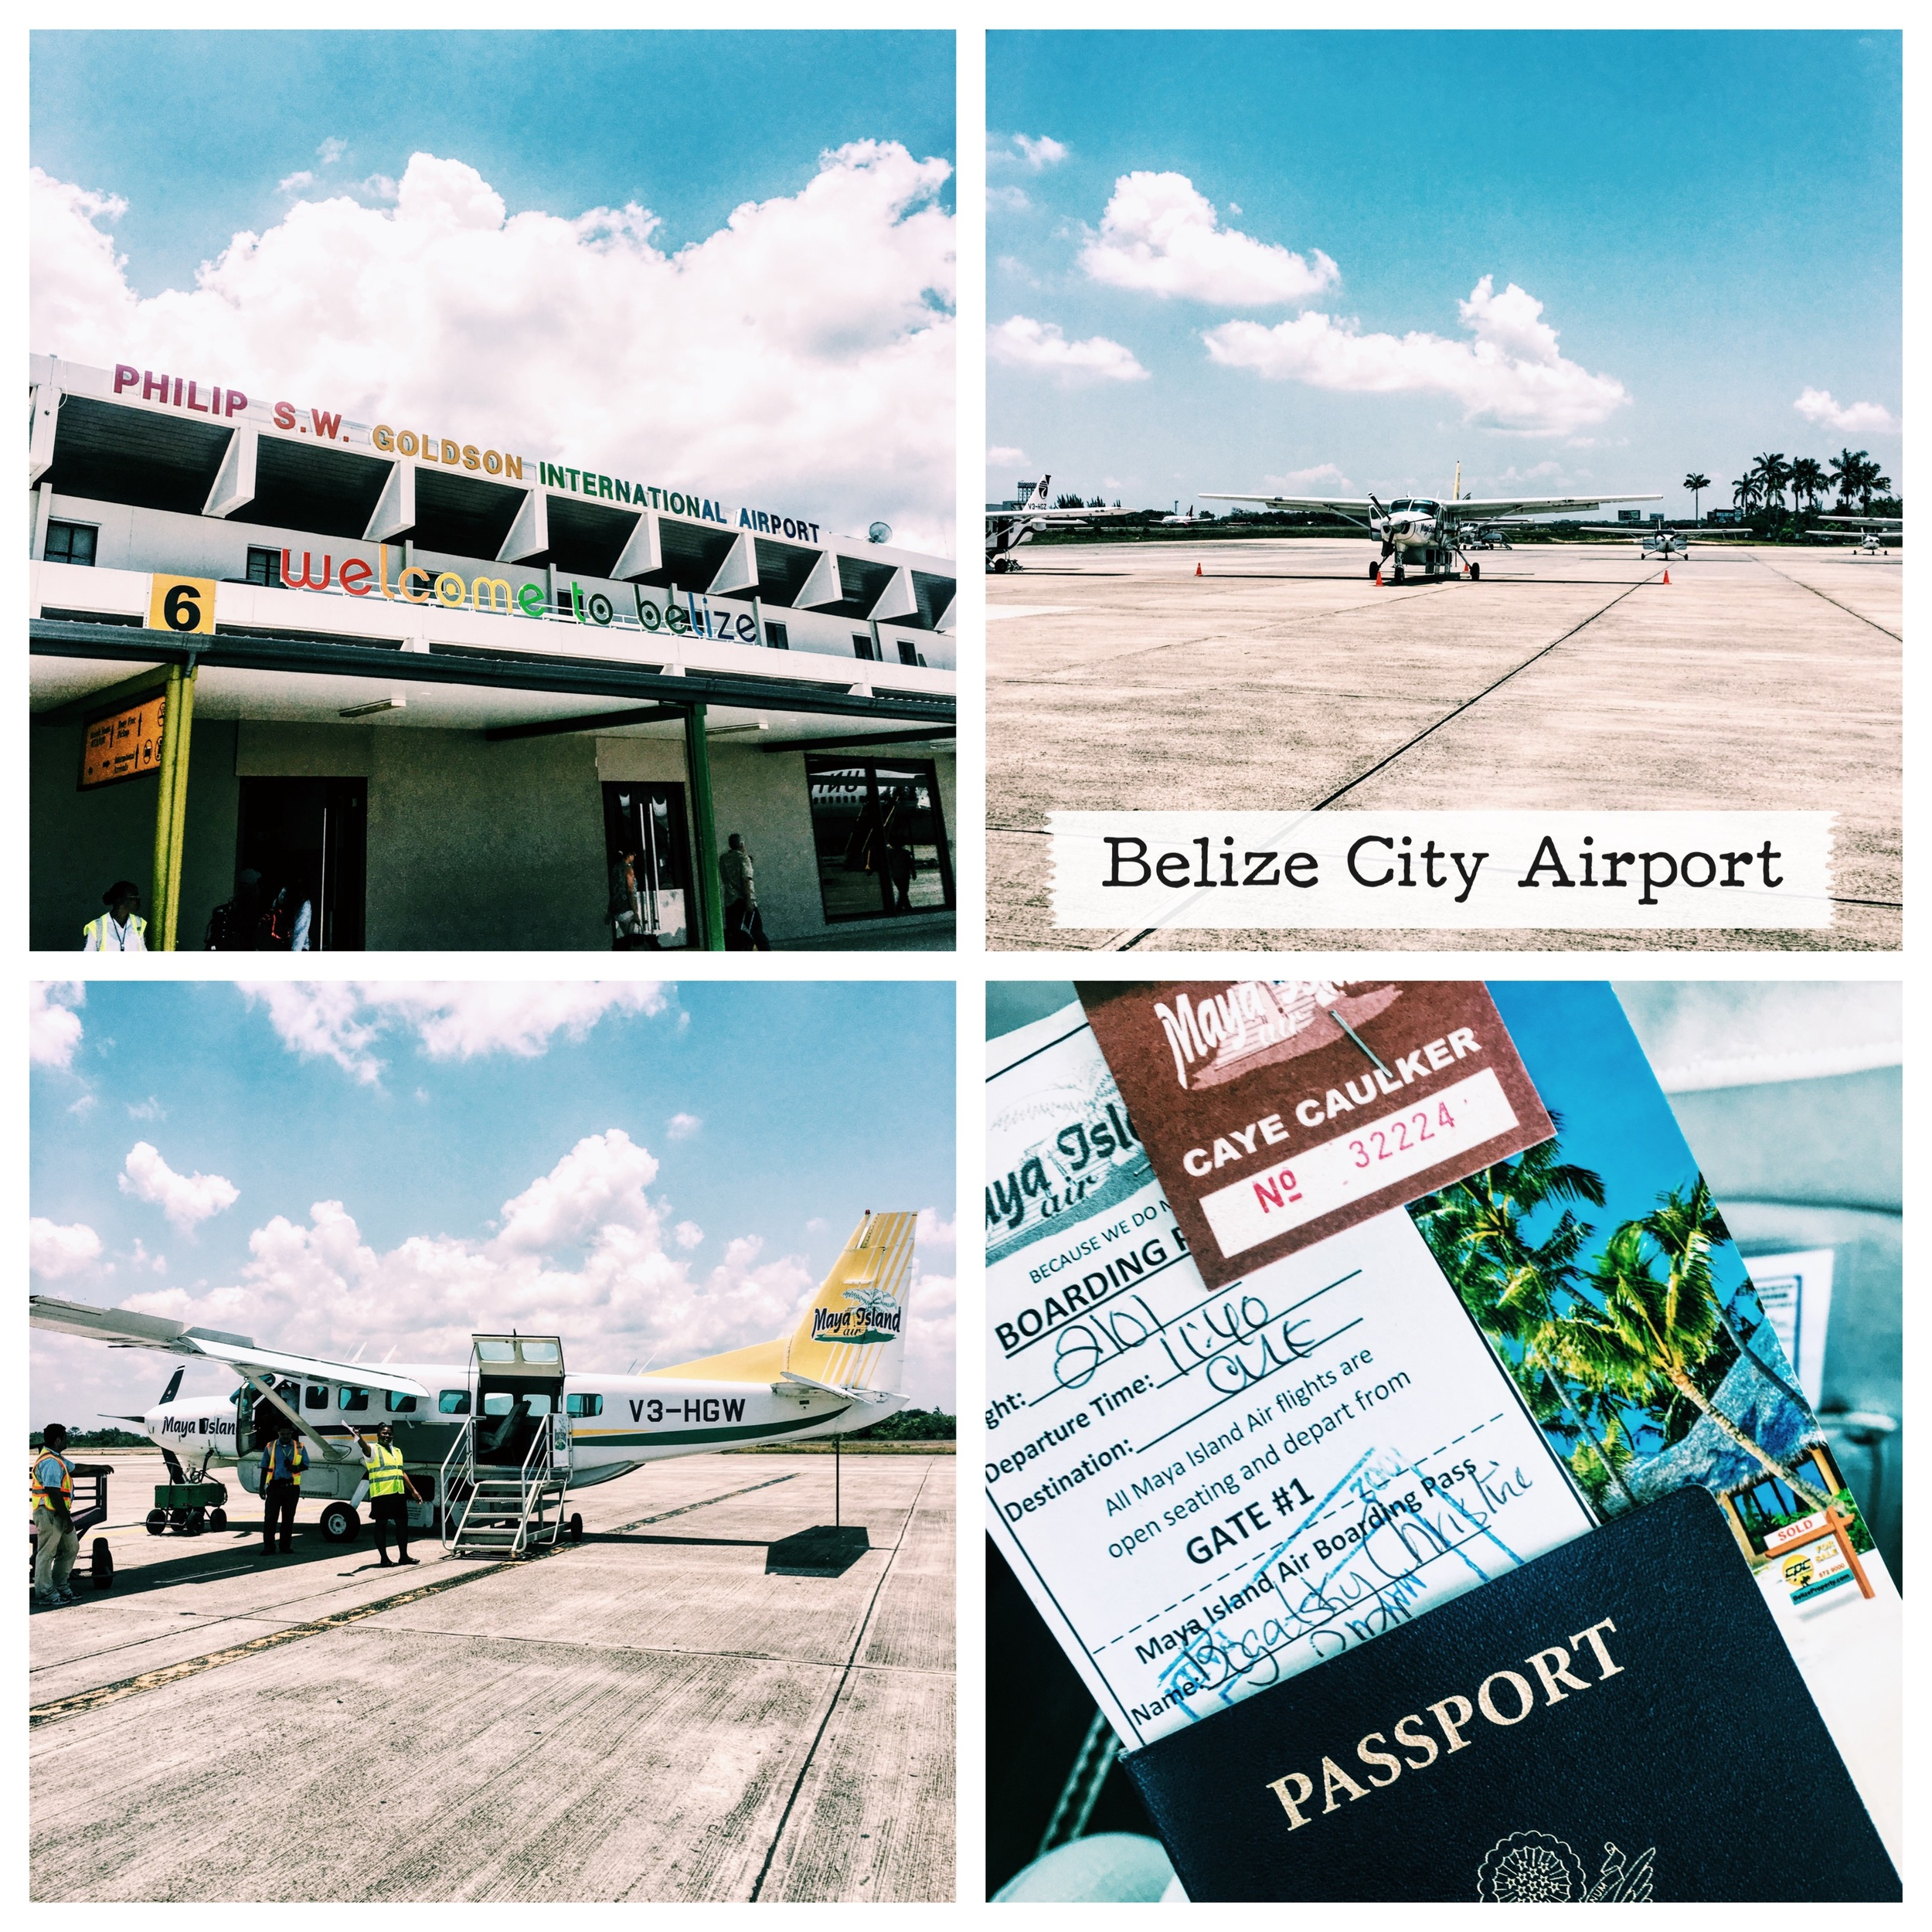 Flying into & over Belize